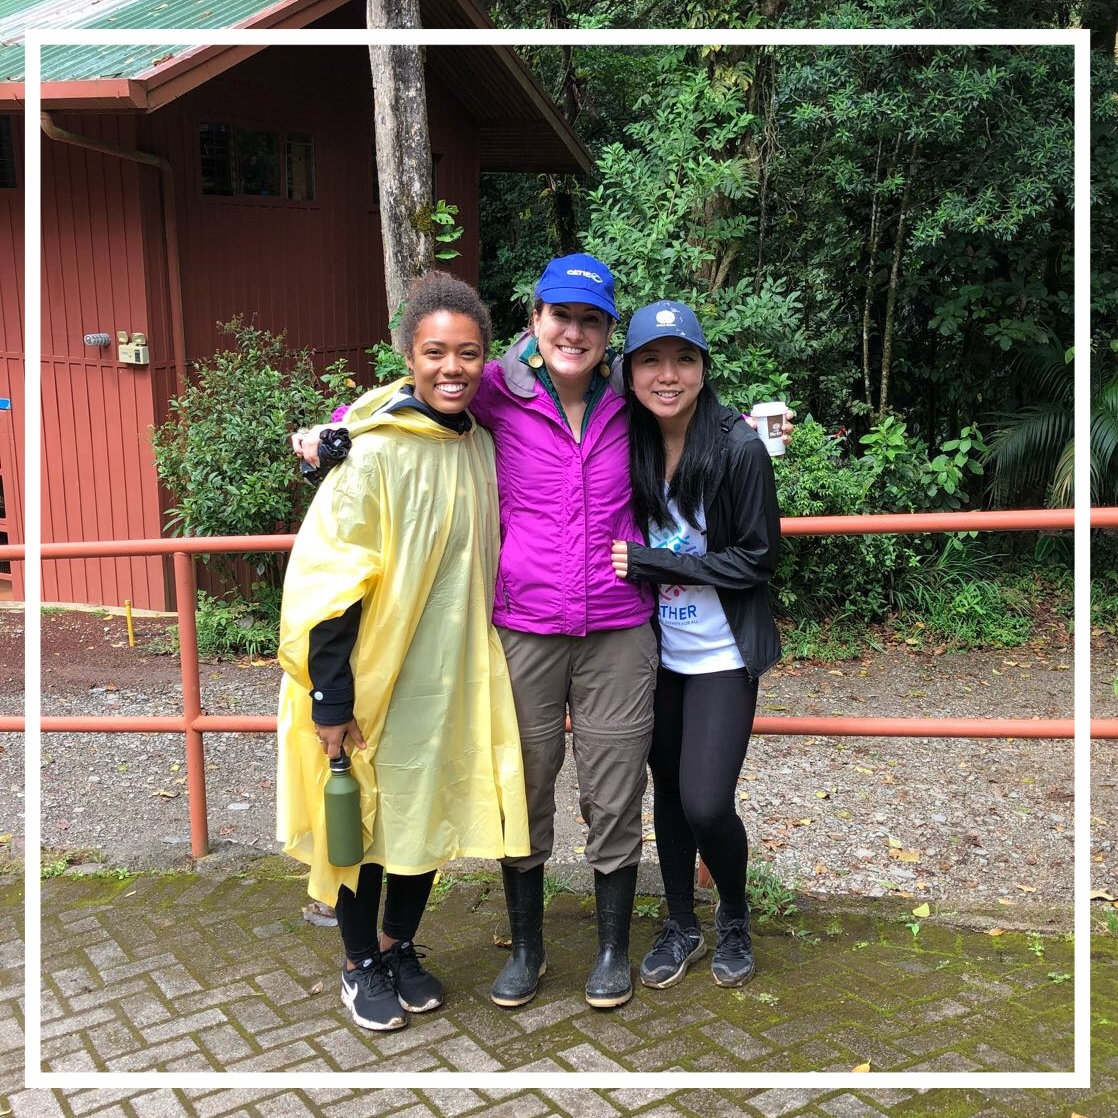 Occidental Students from DWA 201 Visiting Costa Rica